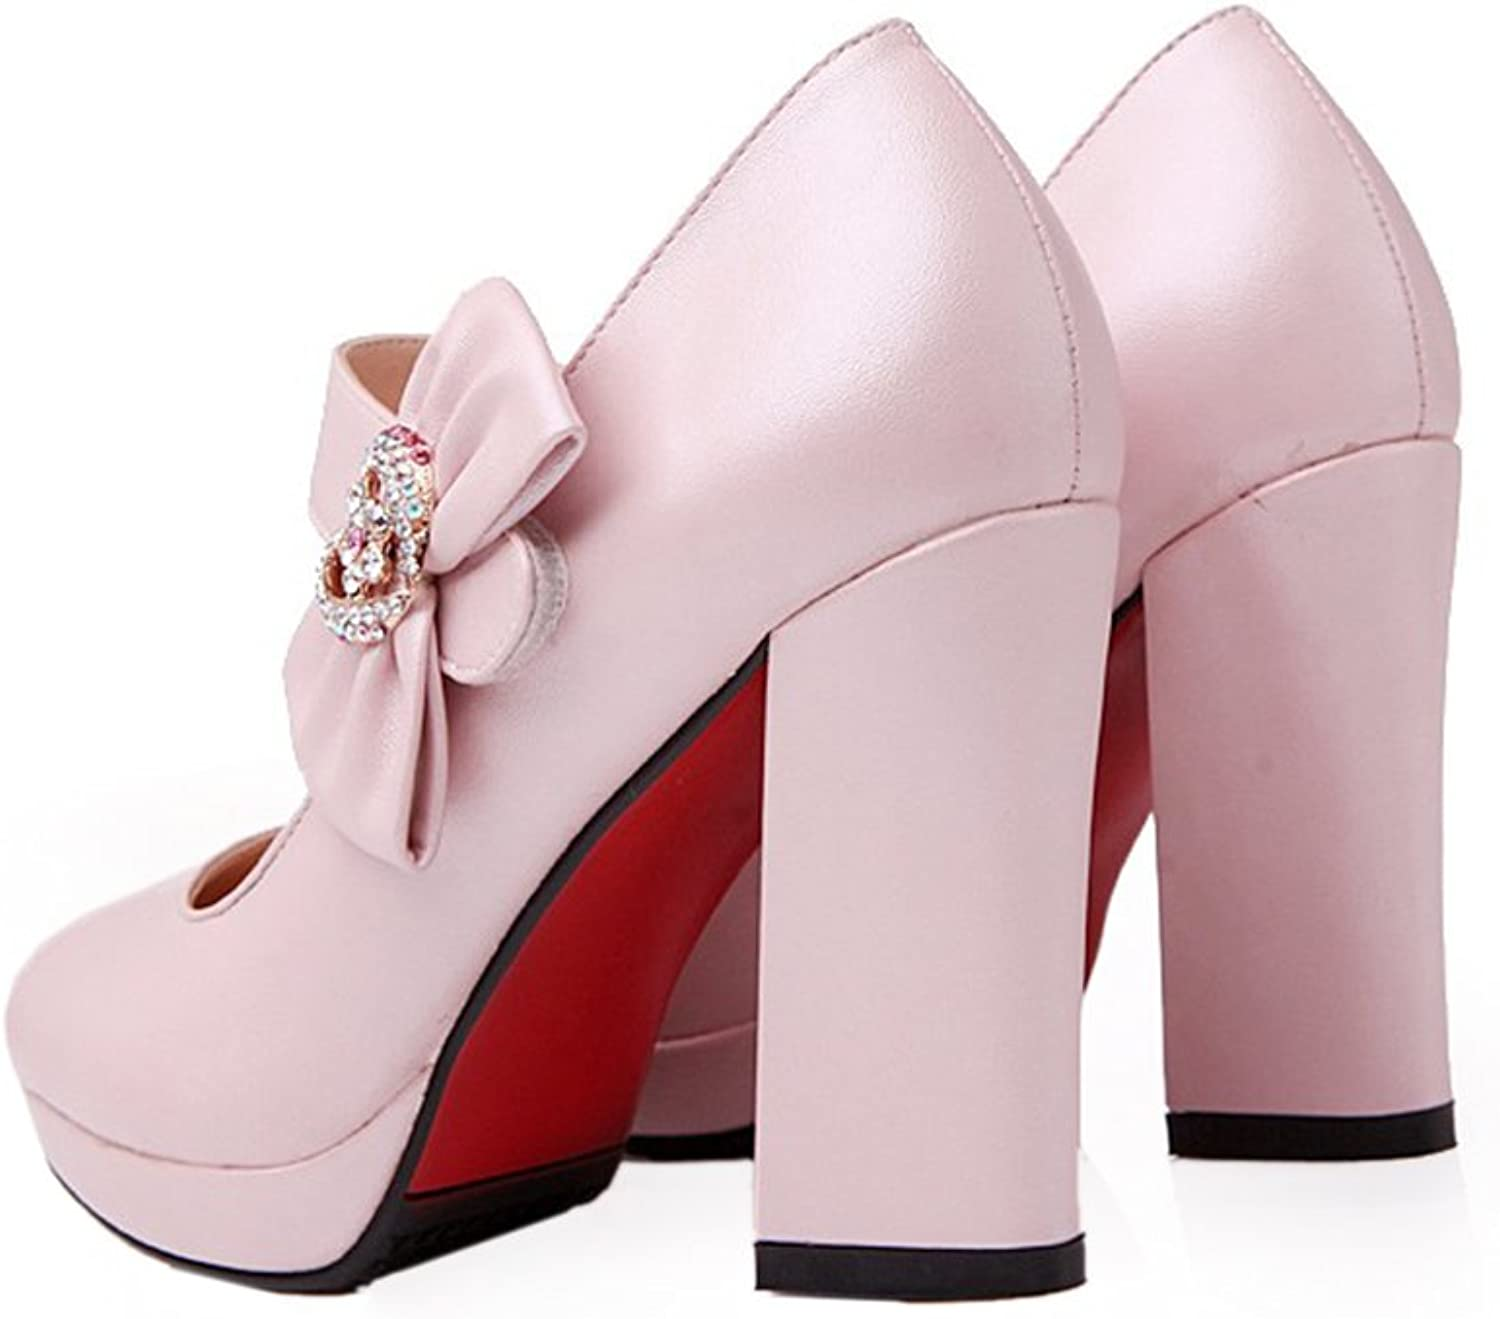 Platform High Thick Heel Bowknot Pointed Thin shoes pink